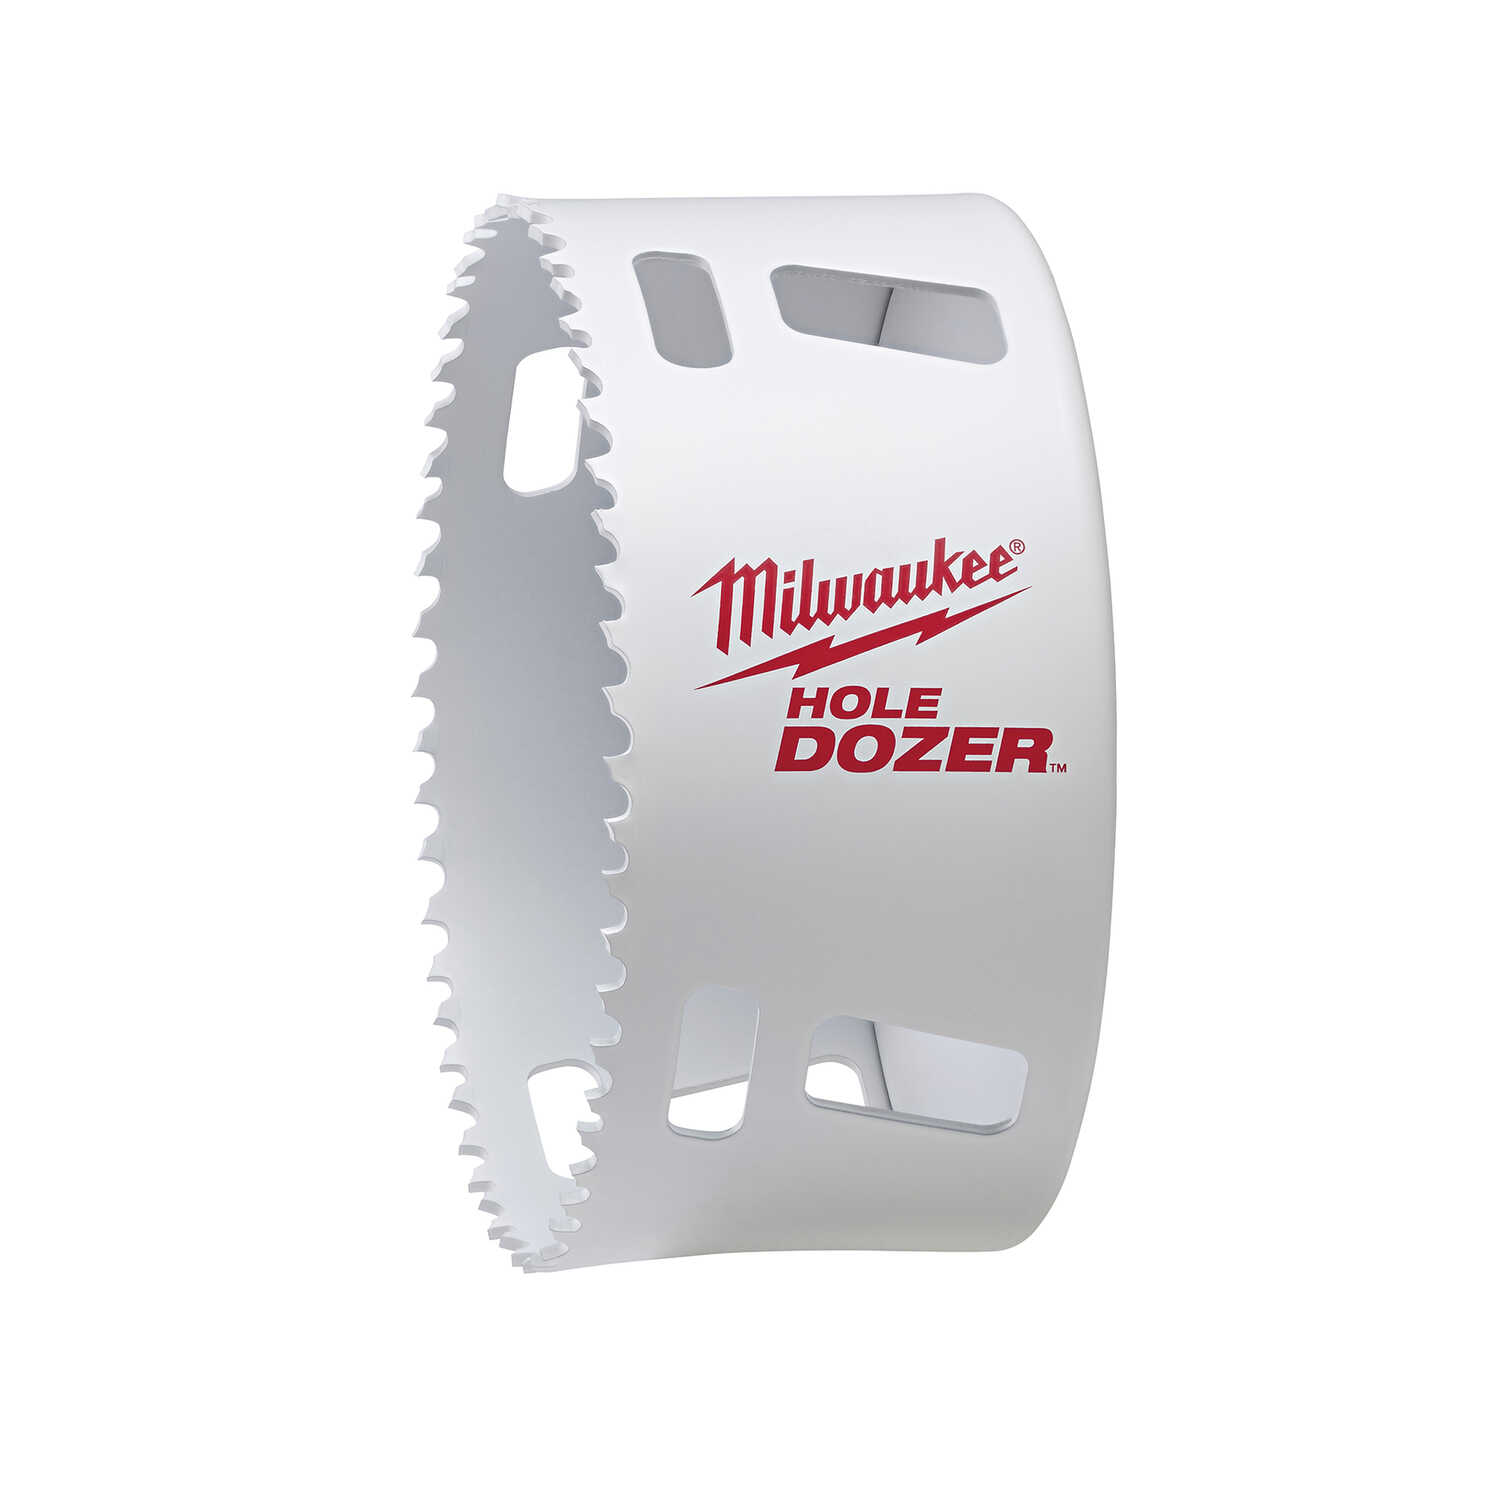 Milwaukee  Hole Dozer  4 in. Dia. x 1.9 in. L Bi-Metal  Hole Saw  1/4 in. 1 pc.